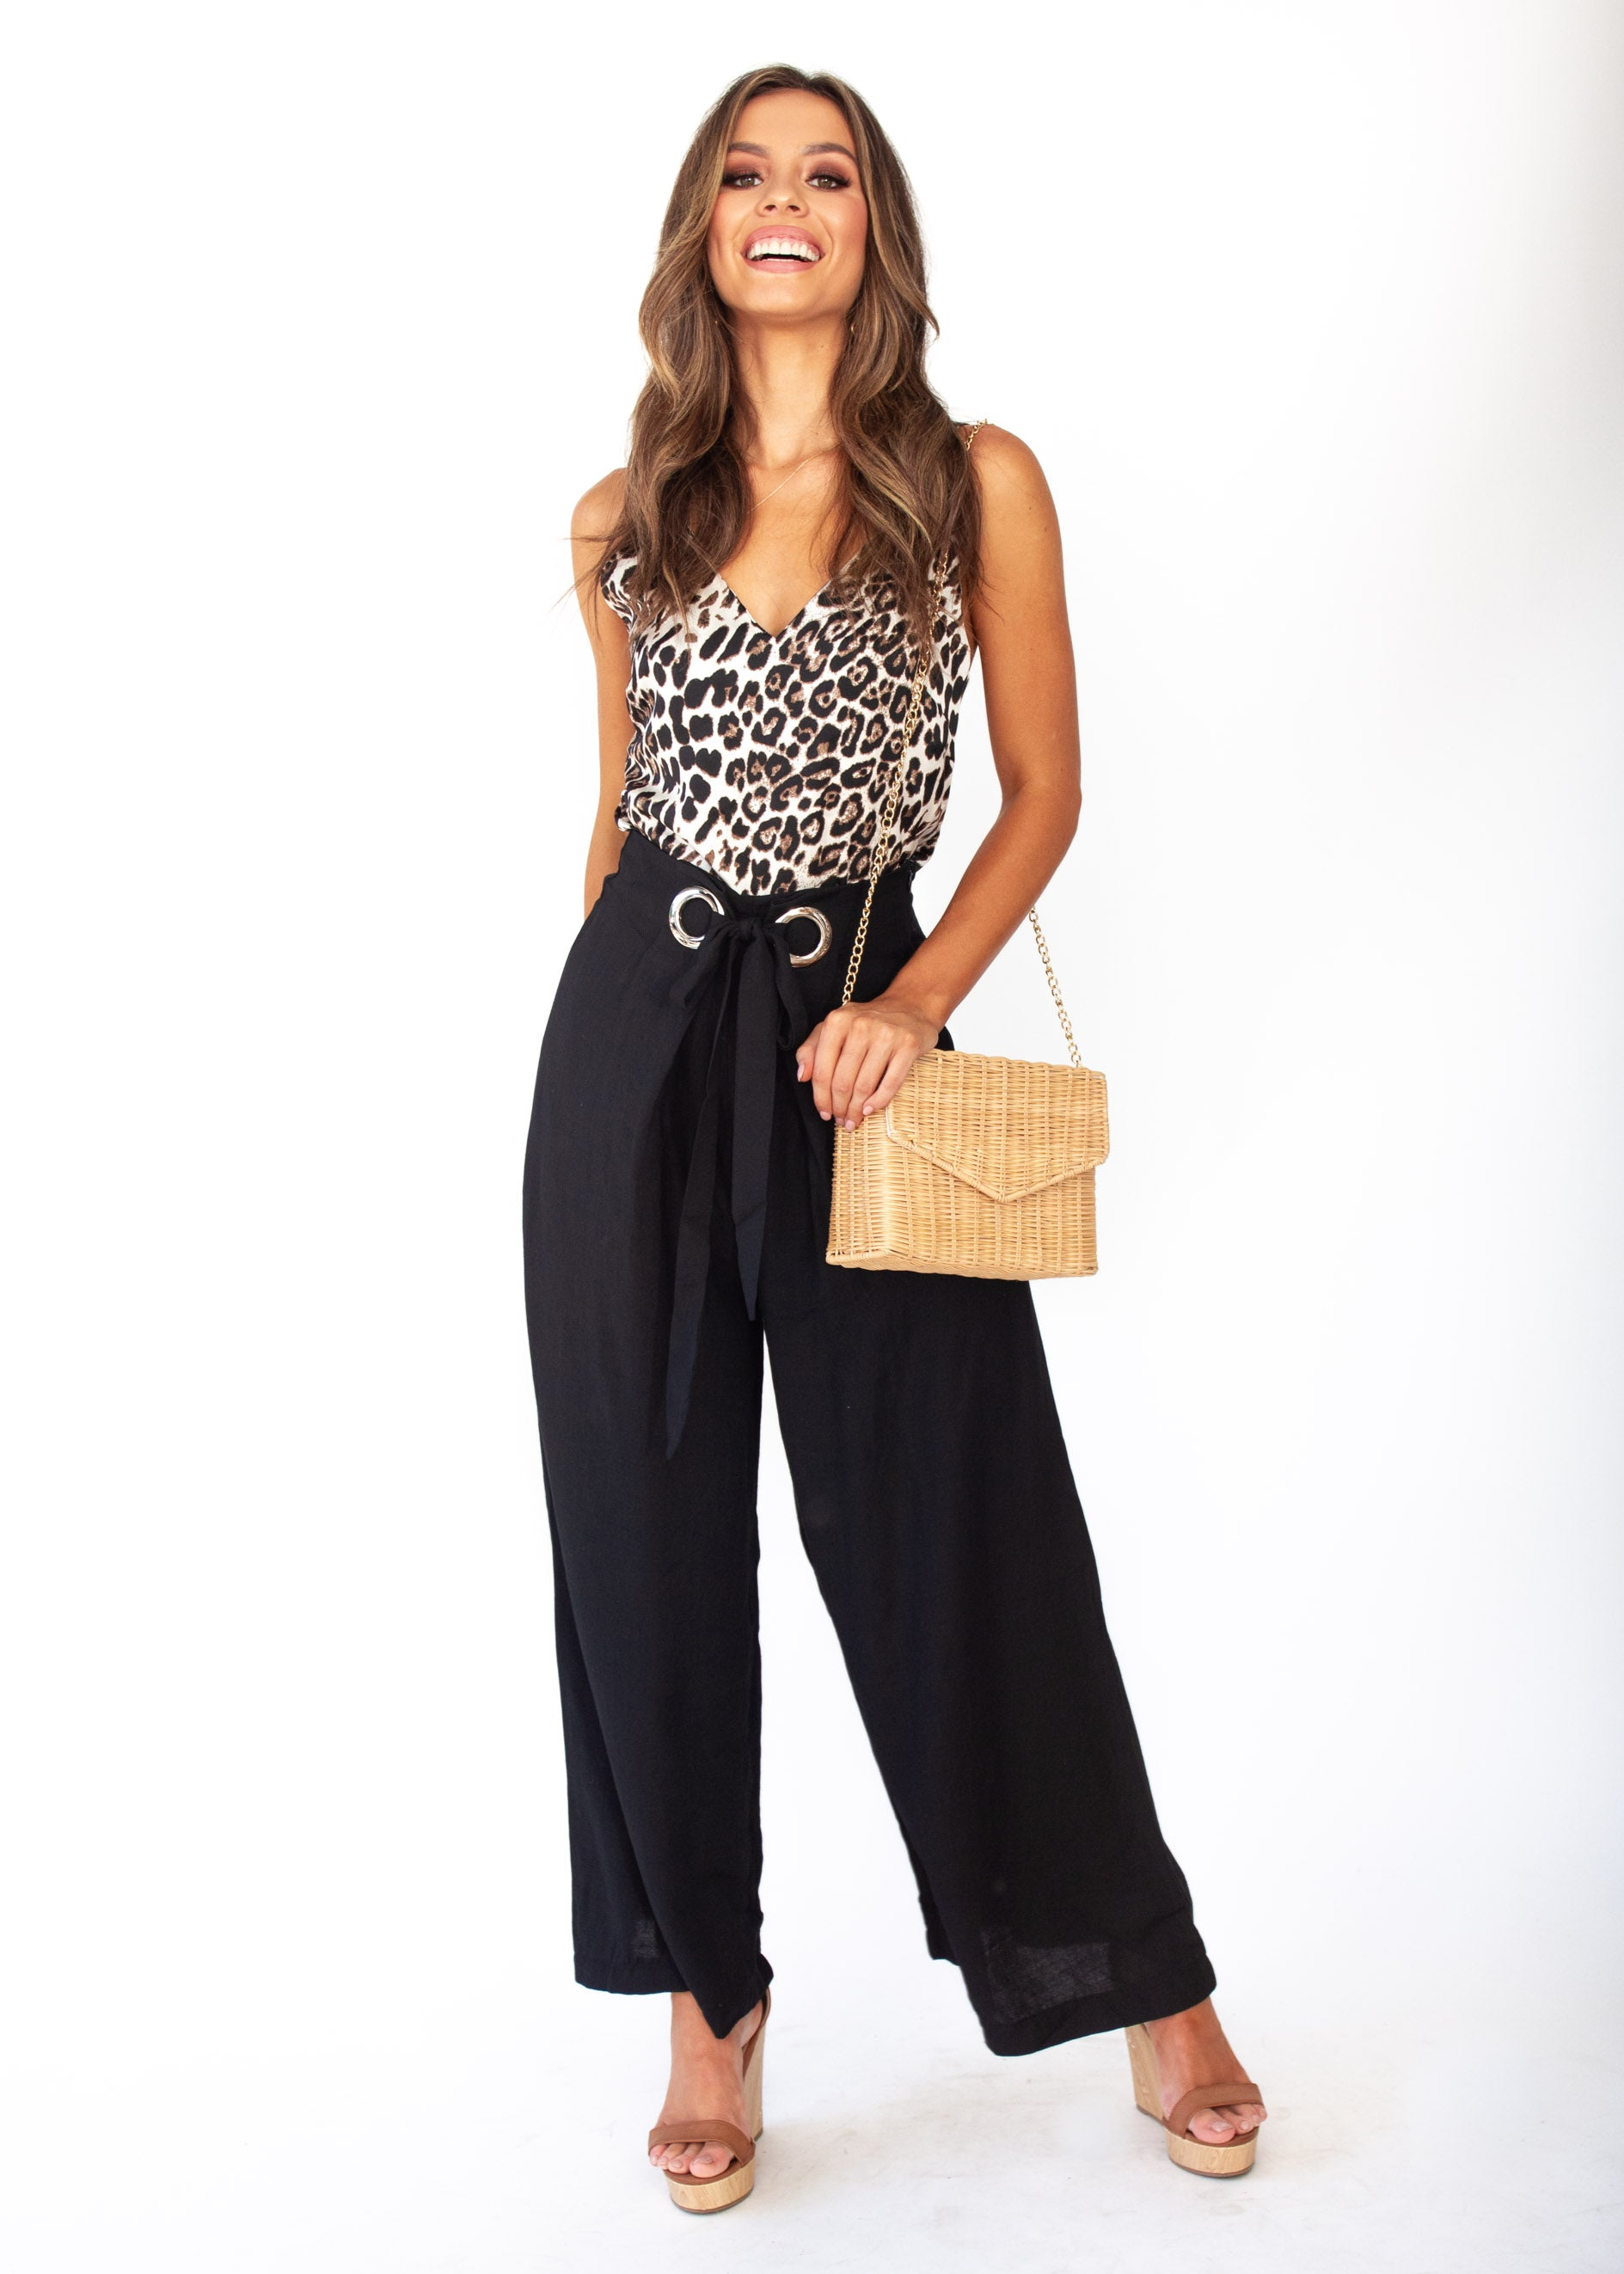 Women's High Energy Wide Leg Pants - Black